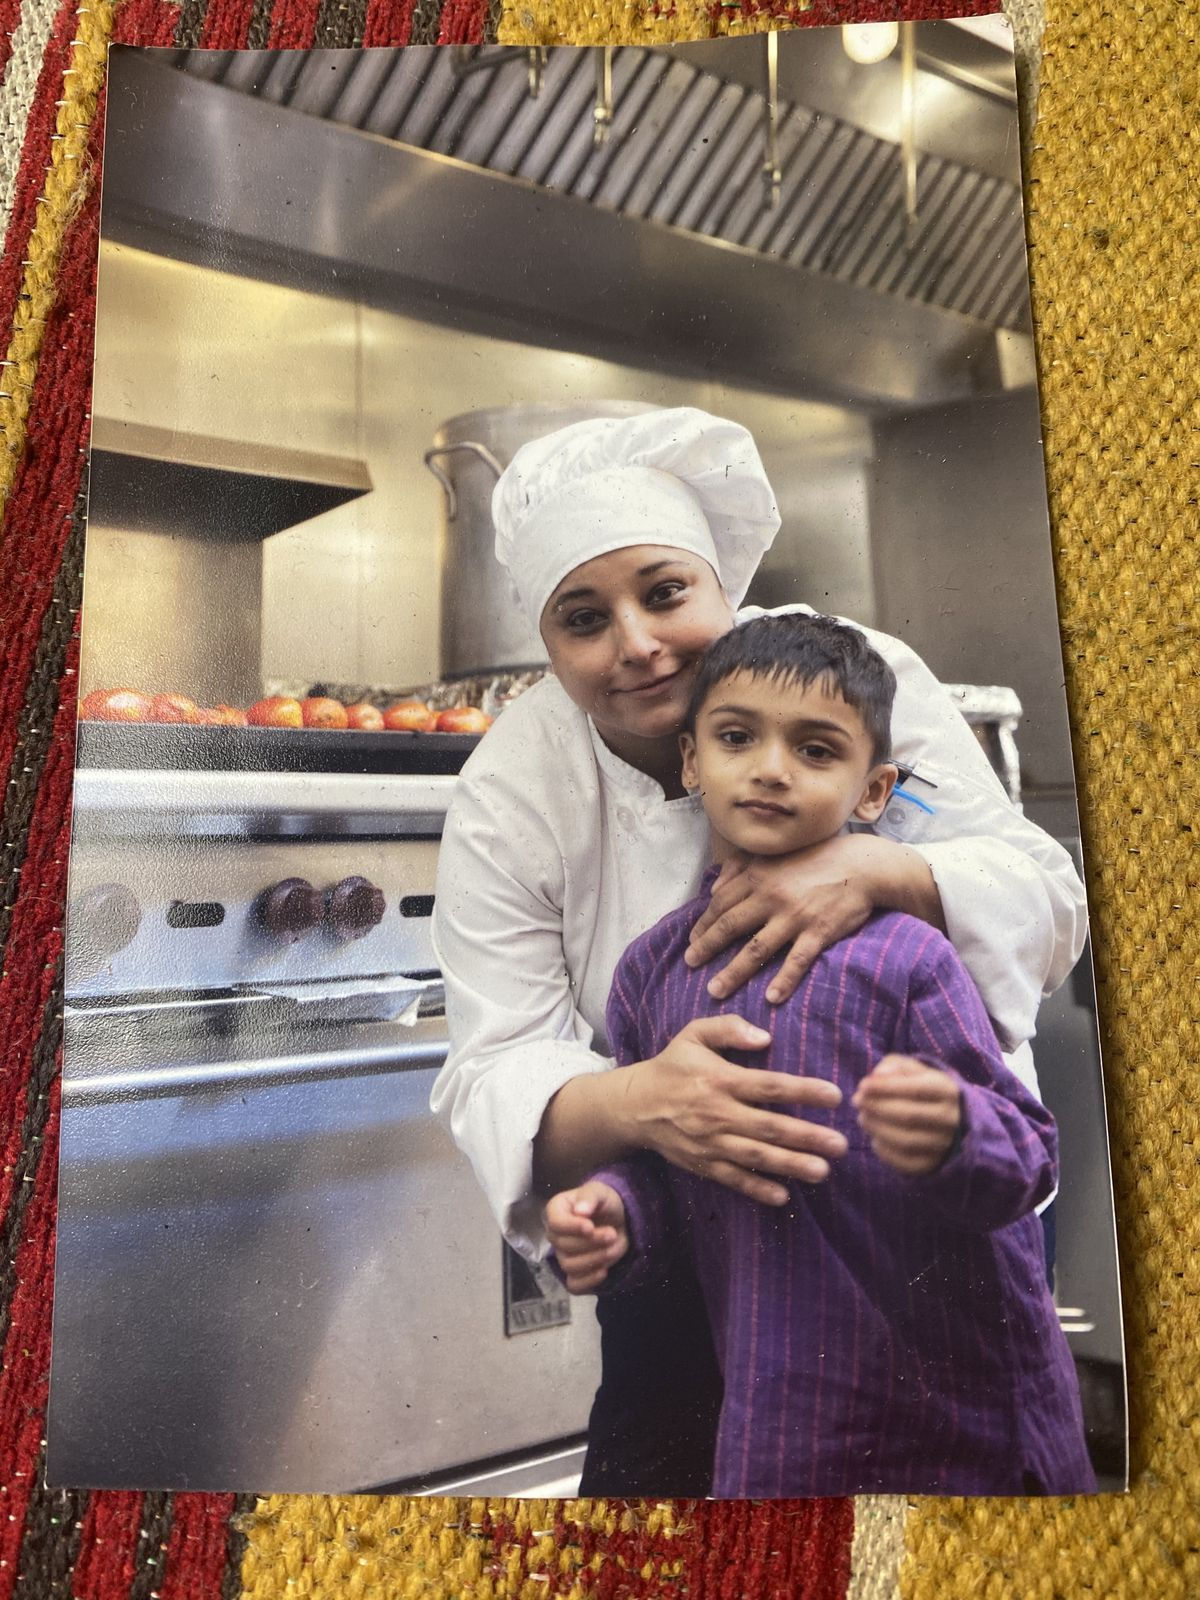 Bini Pradhan in the kitchen, wearing her chef's whites, with her son Ayush